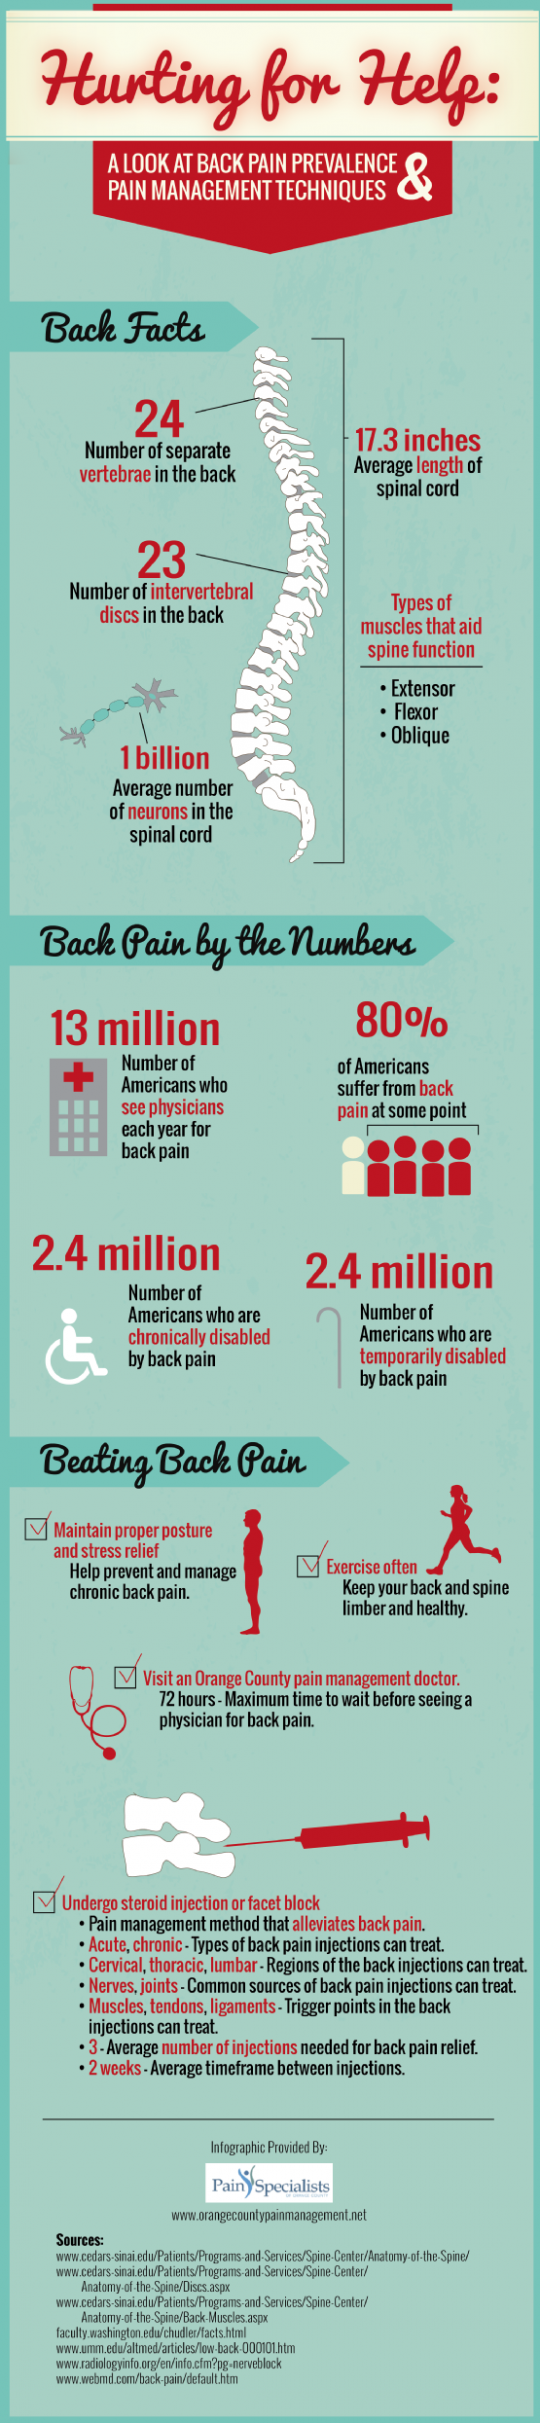 Hurting for Help: A Look at Back Pain Prevalence and Pain Management Techniques